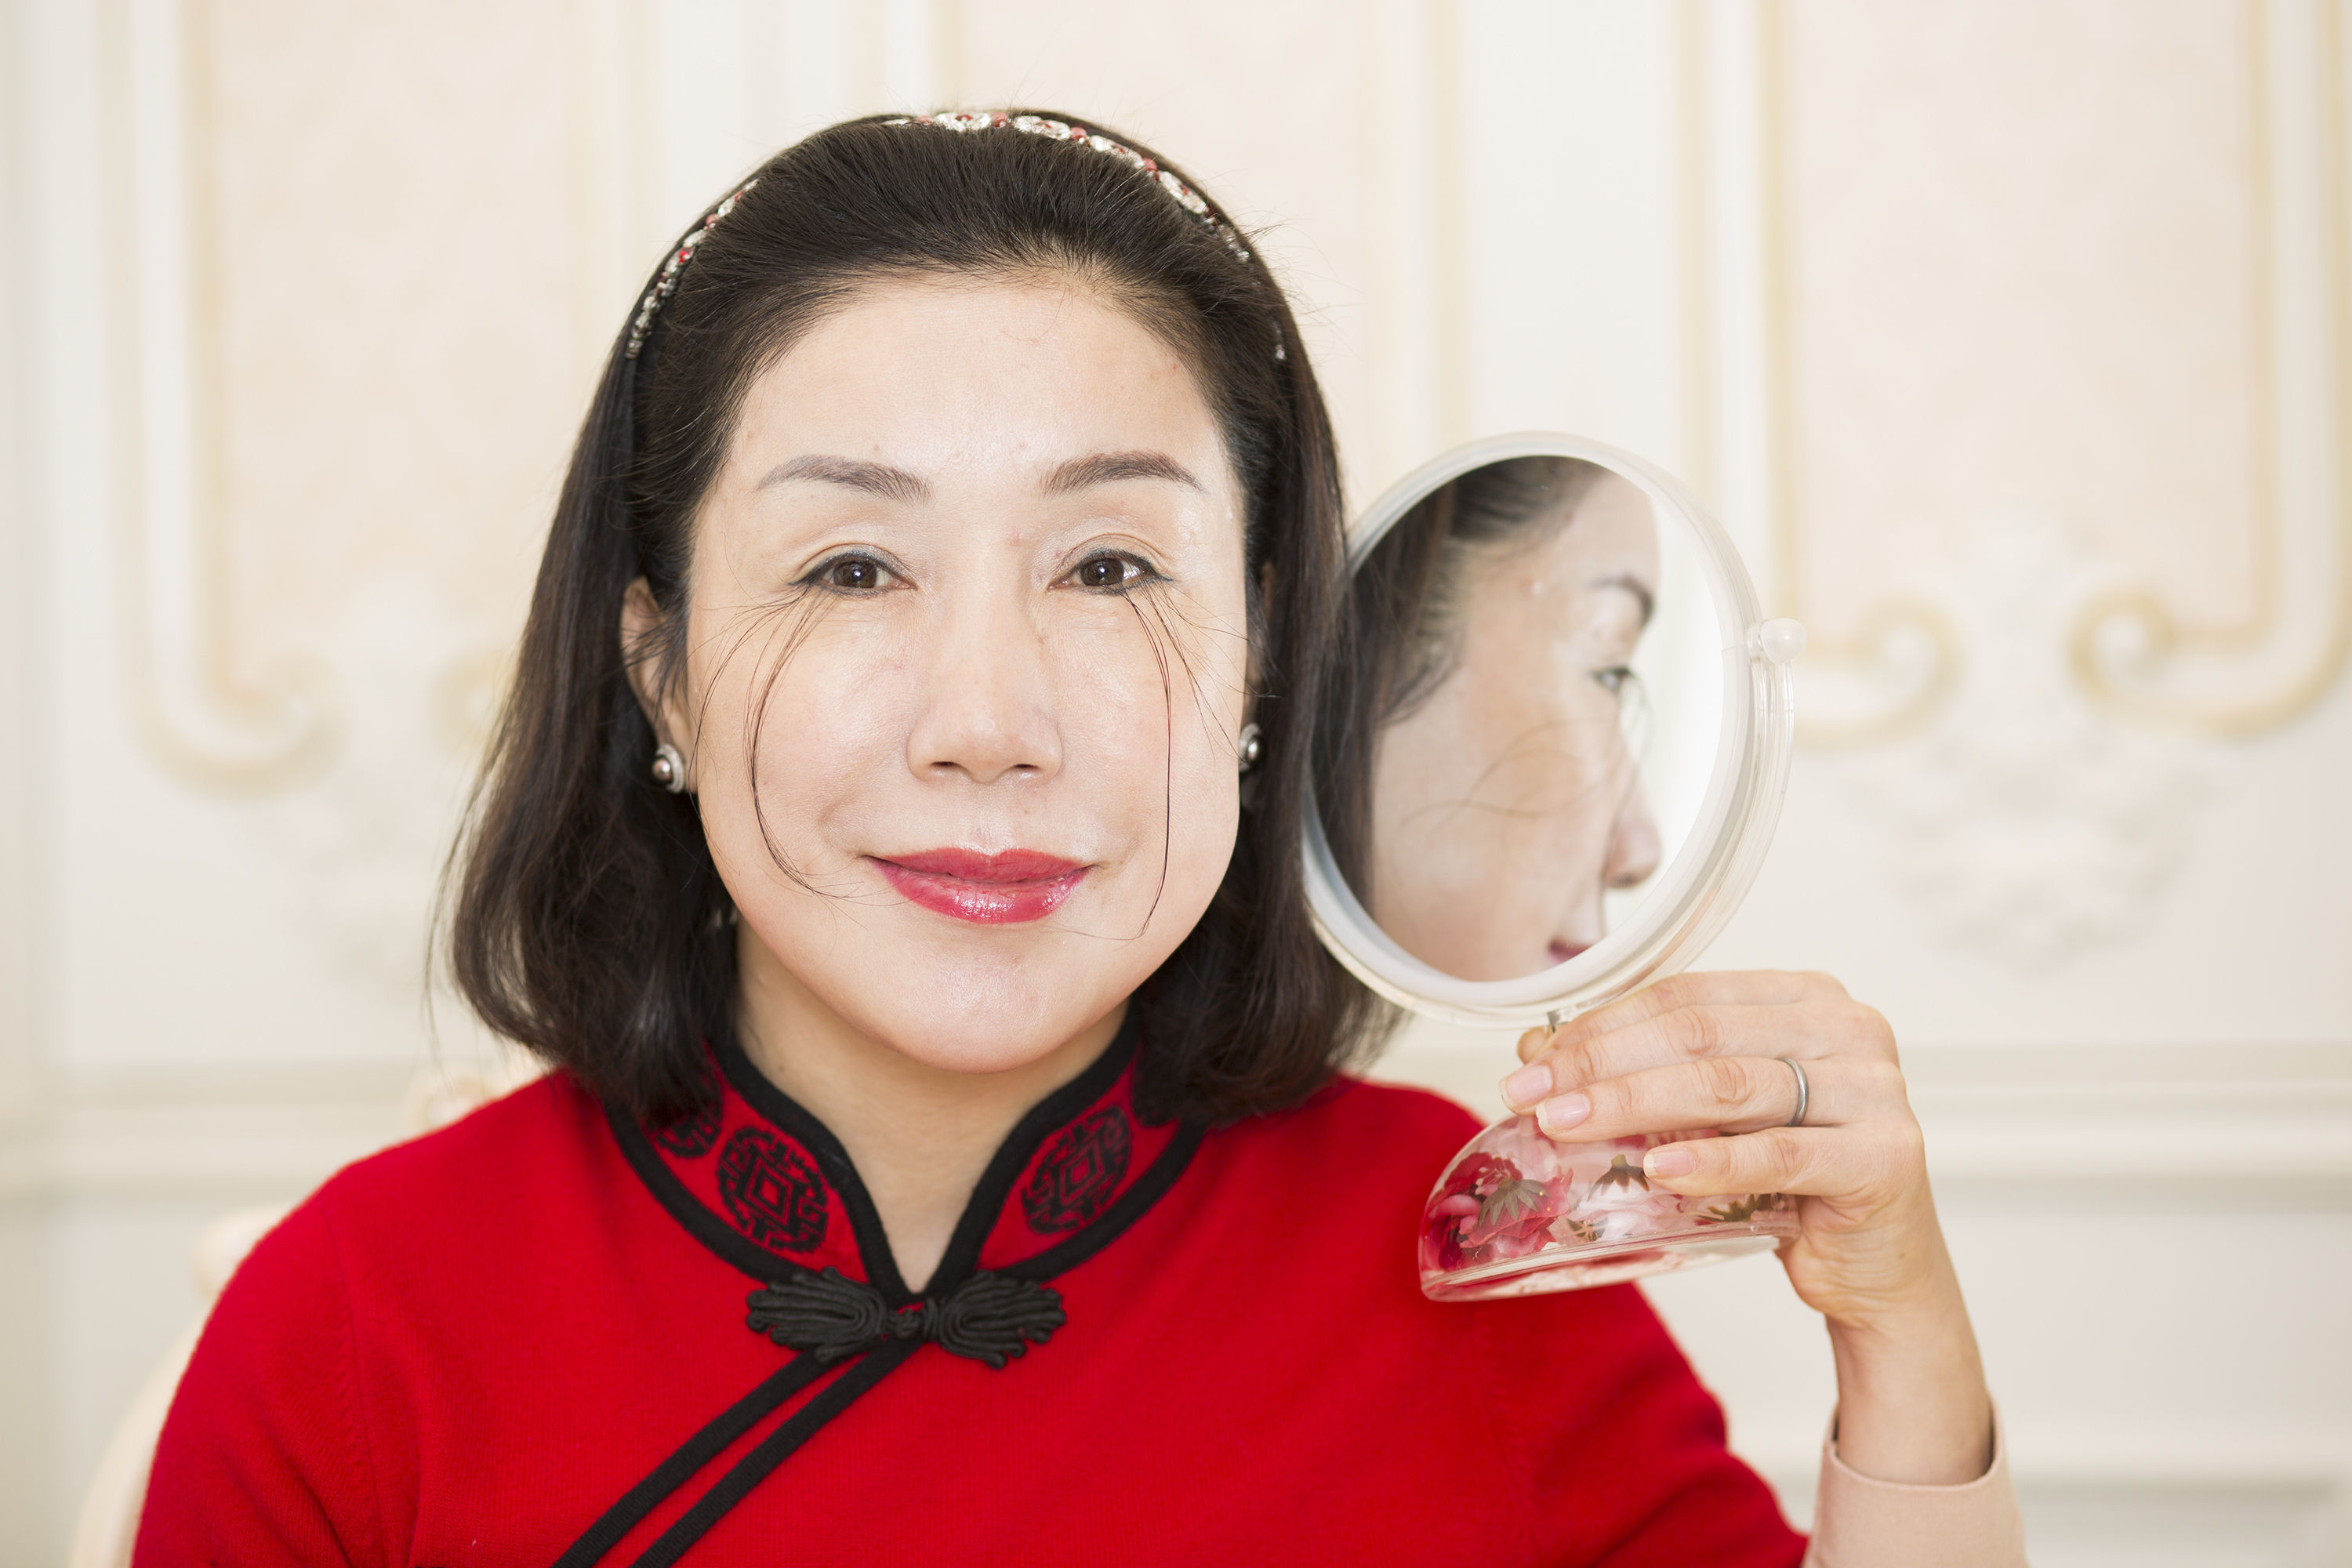 You Jianxia who has the record for the Longest Eyelash as she appears in the latest edition of Guinness World Records 2018. (Jonathan Browning/GWR/PA Wire)